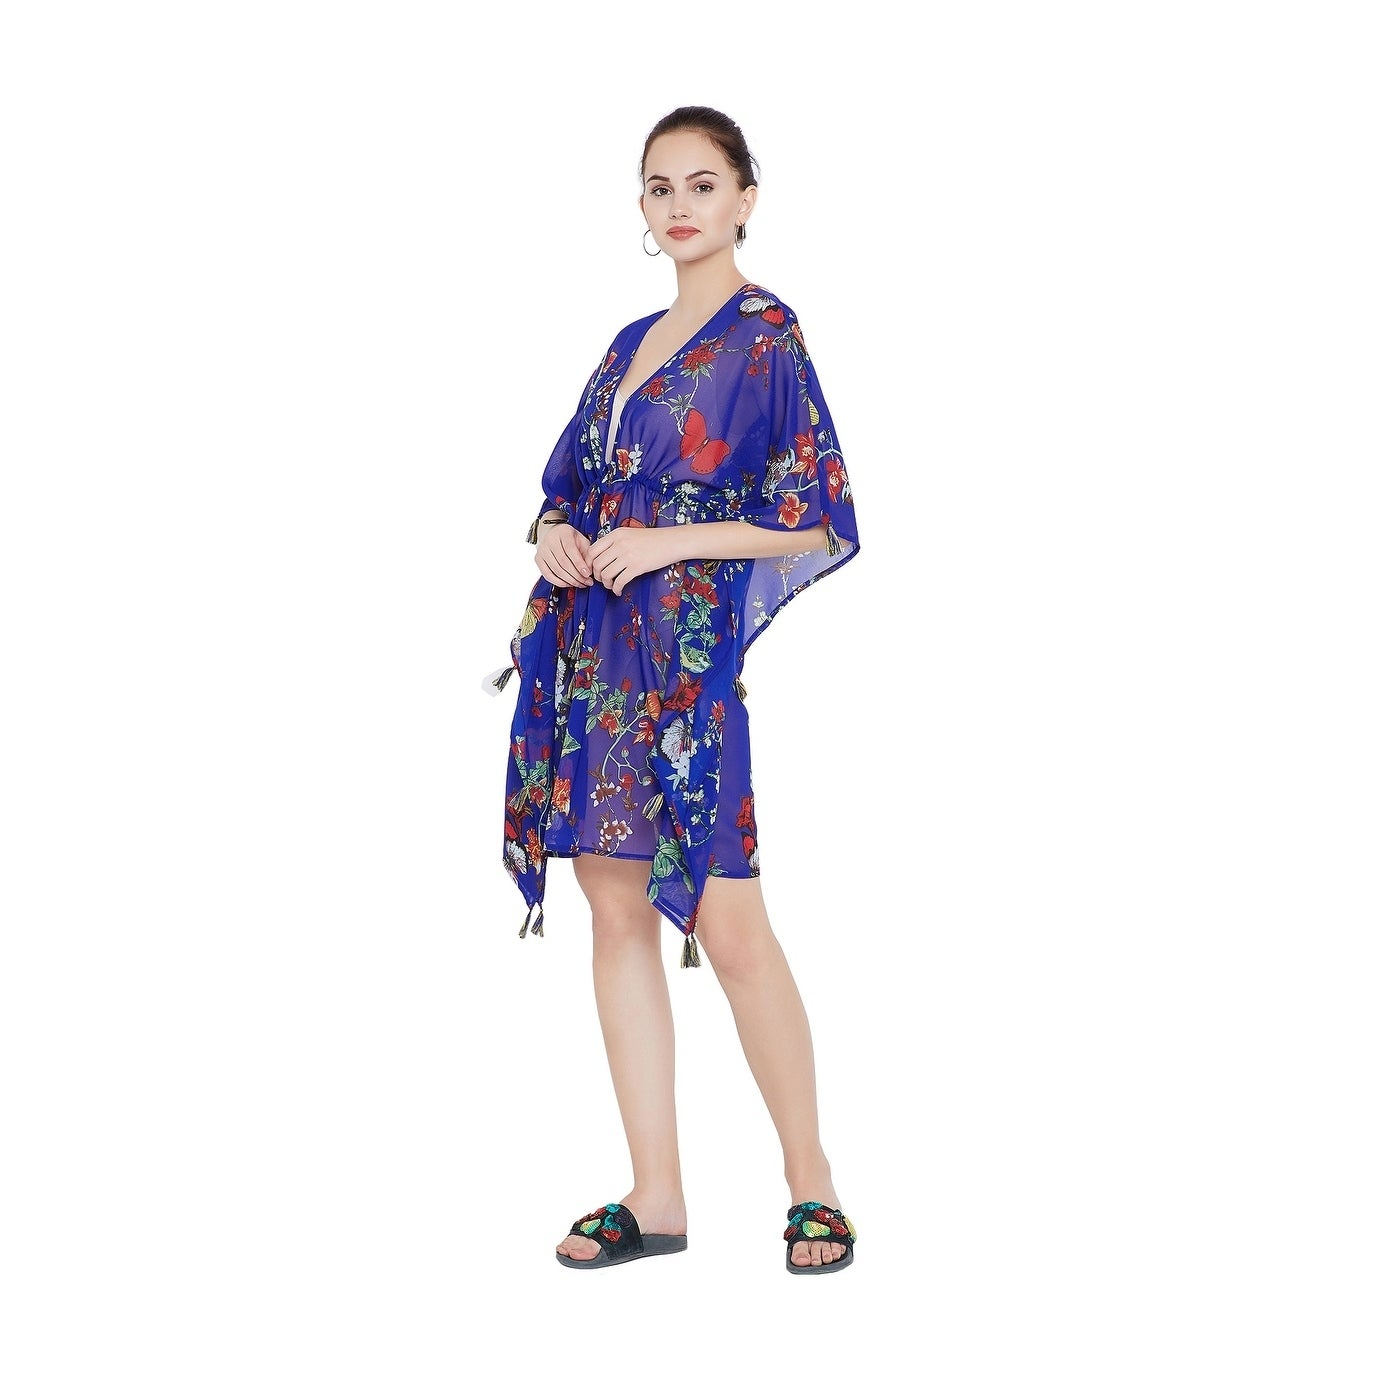 ea9f0bbdfc Shop Royal Blue Tassel Tie-Up Women Beach Dresses Swimsuit Bikini Cover Ups  - Free Shipping Today - Overstock - 23059355